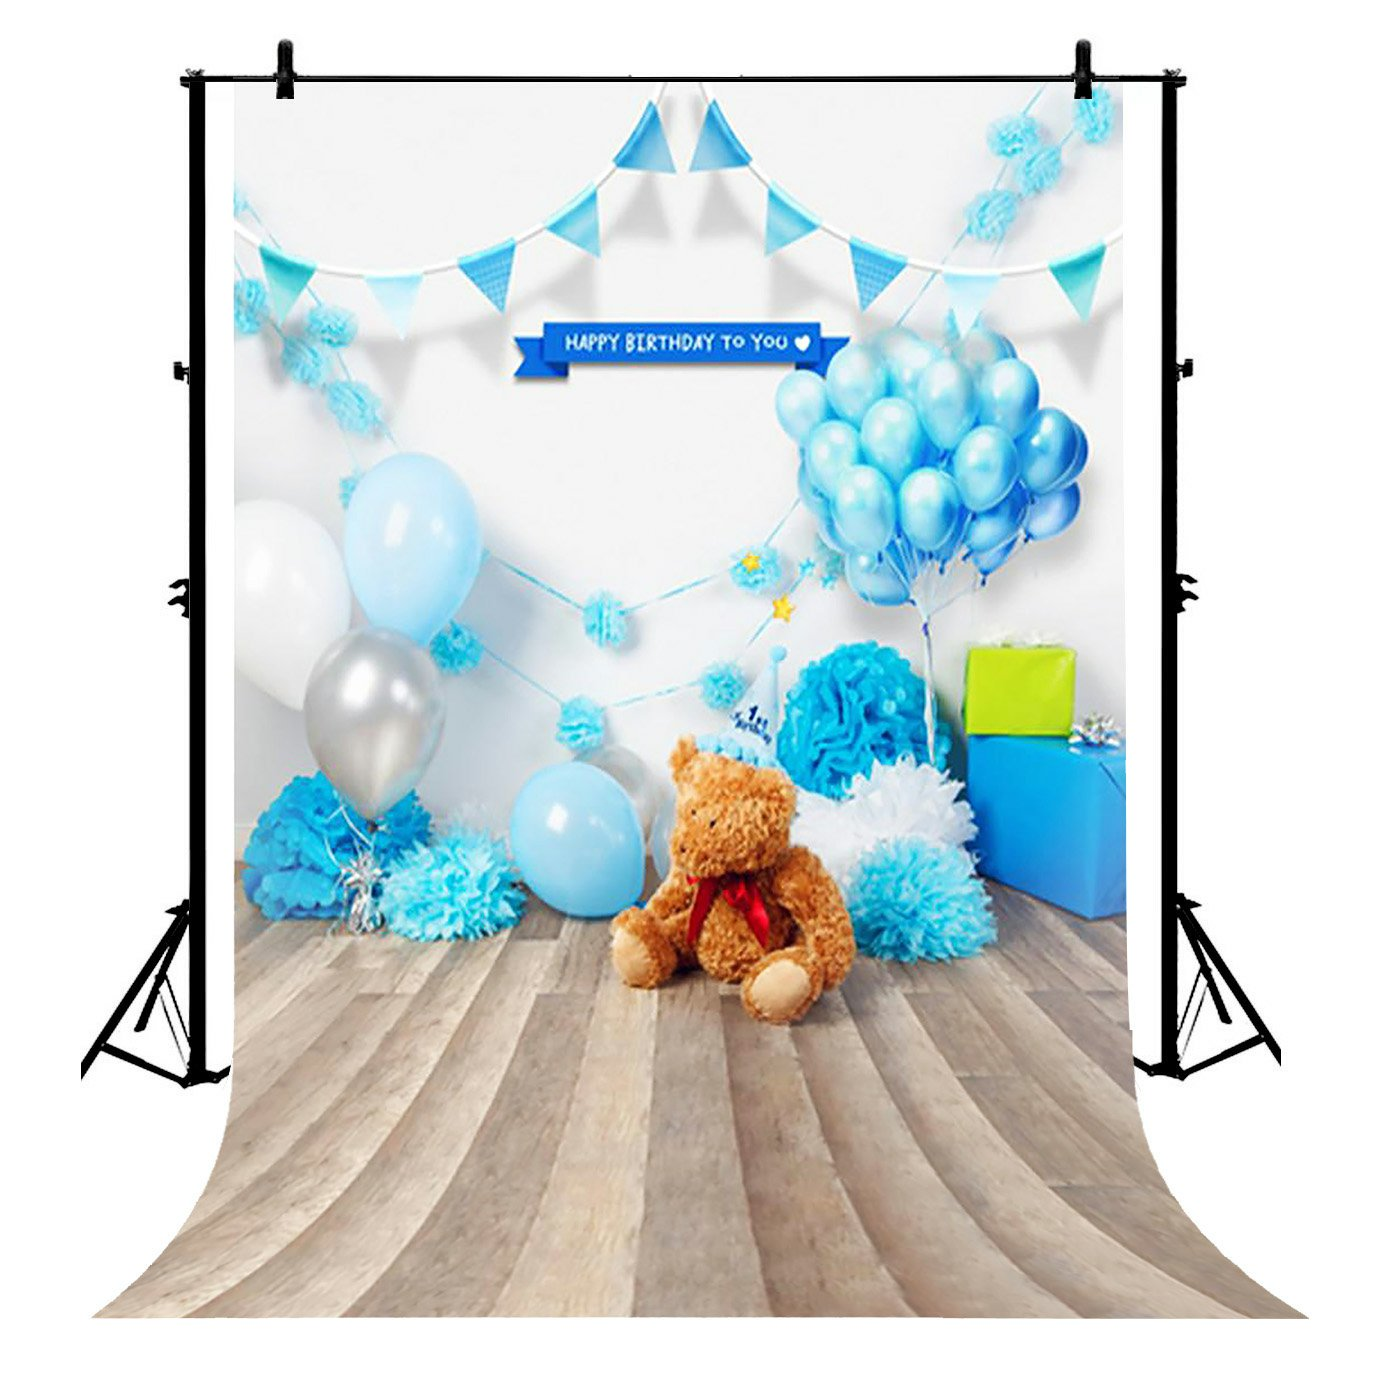 GCKG 7x5ft Cake Smash 1st Birthday Bear Boy Baby Polyester Photography Backdrop Studio Prop Photo Background